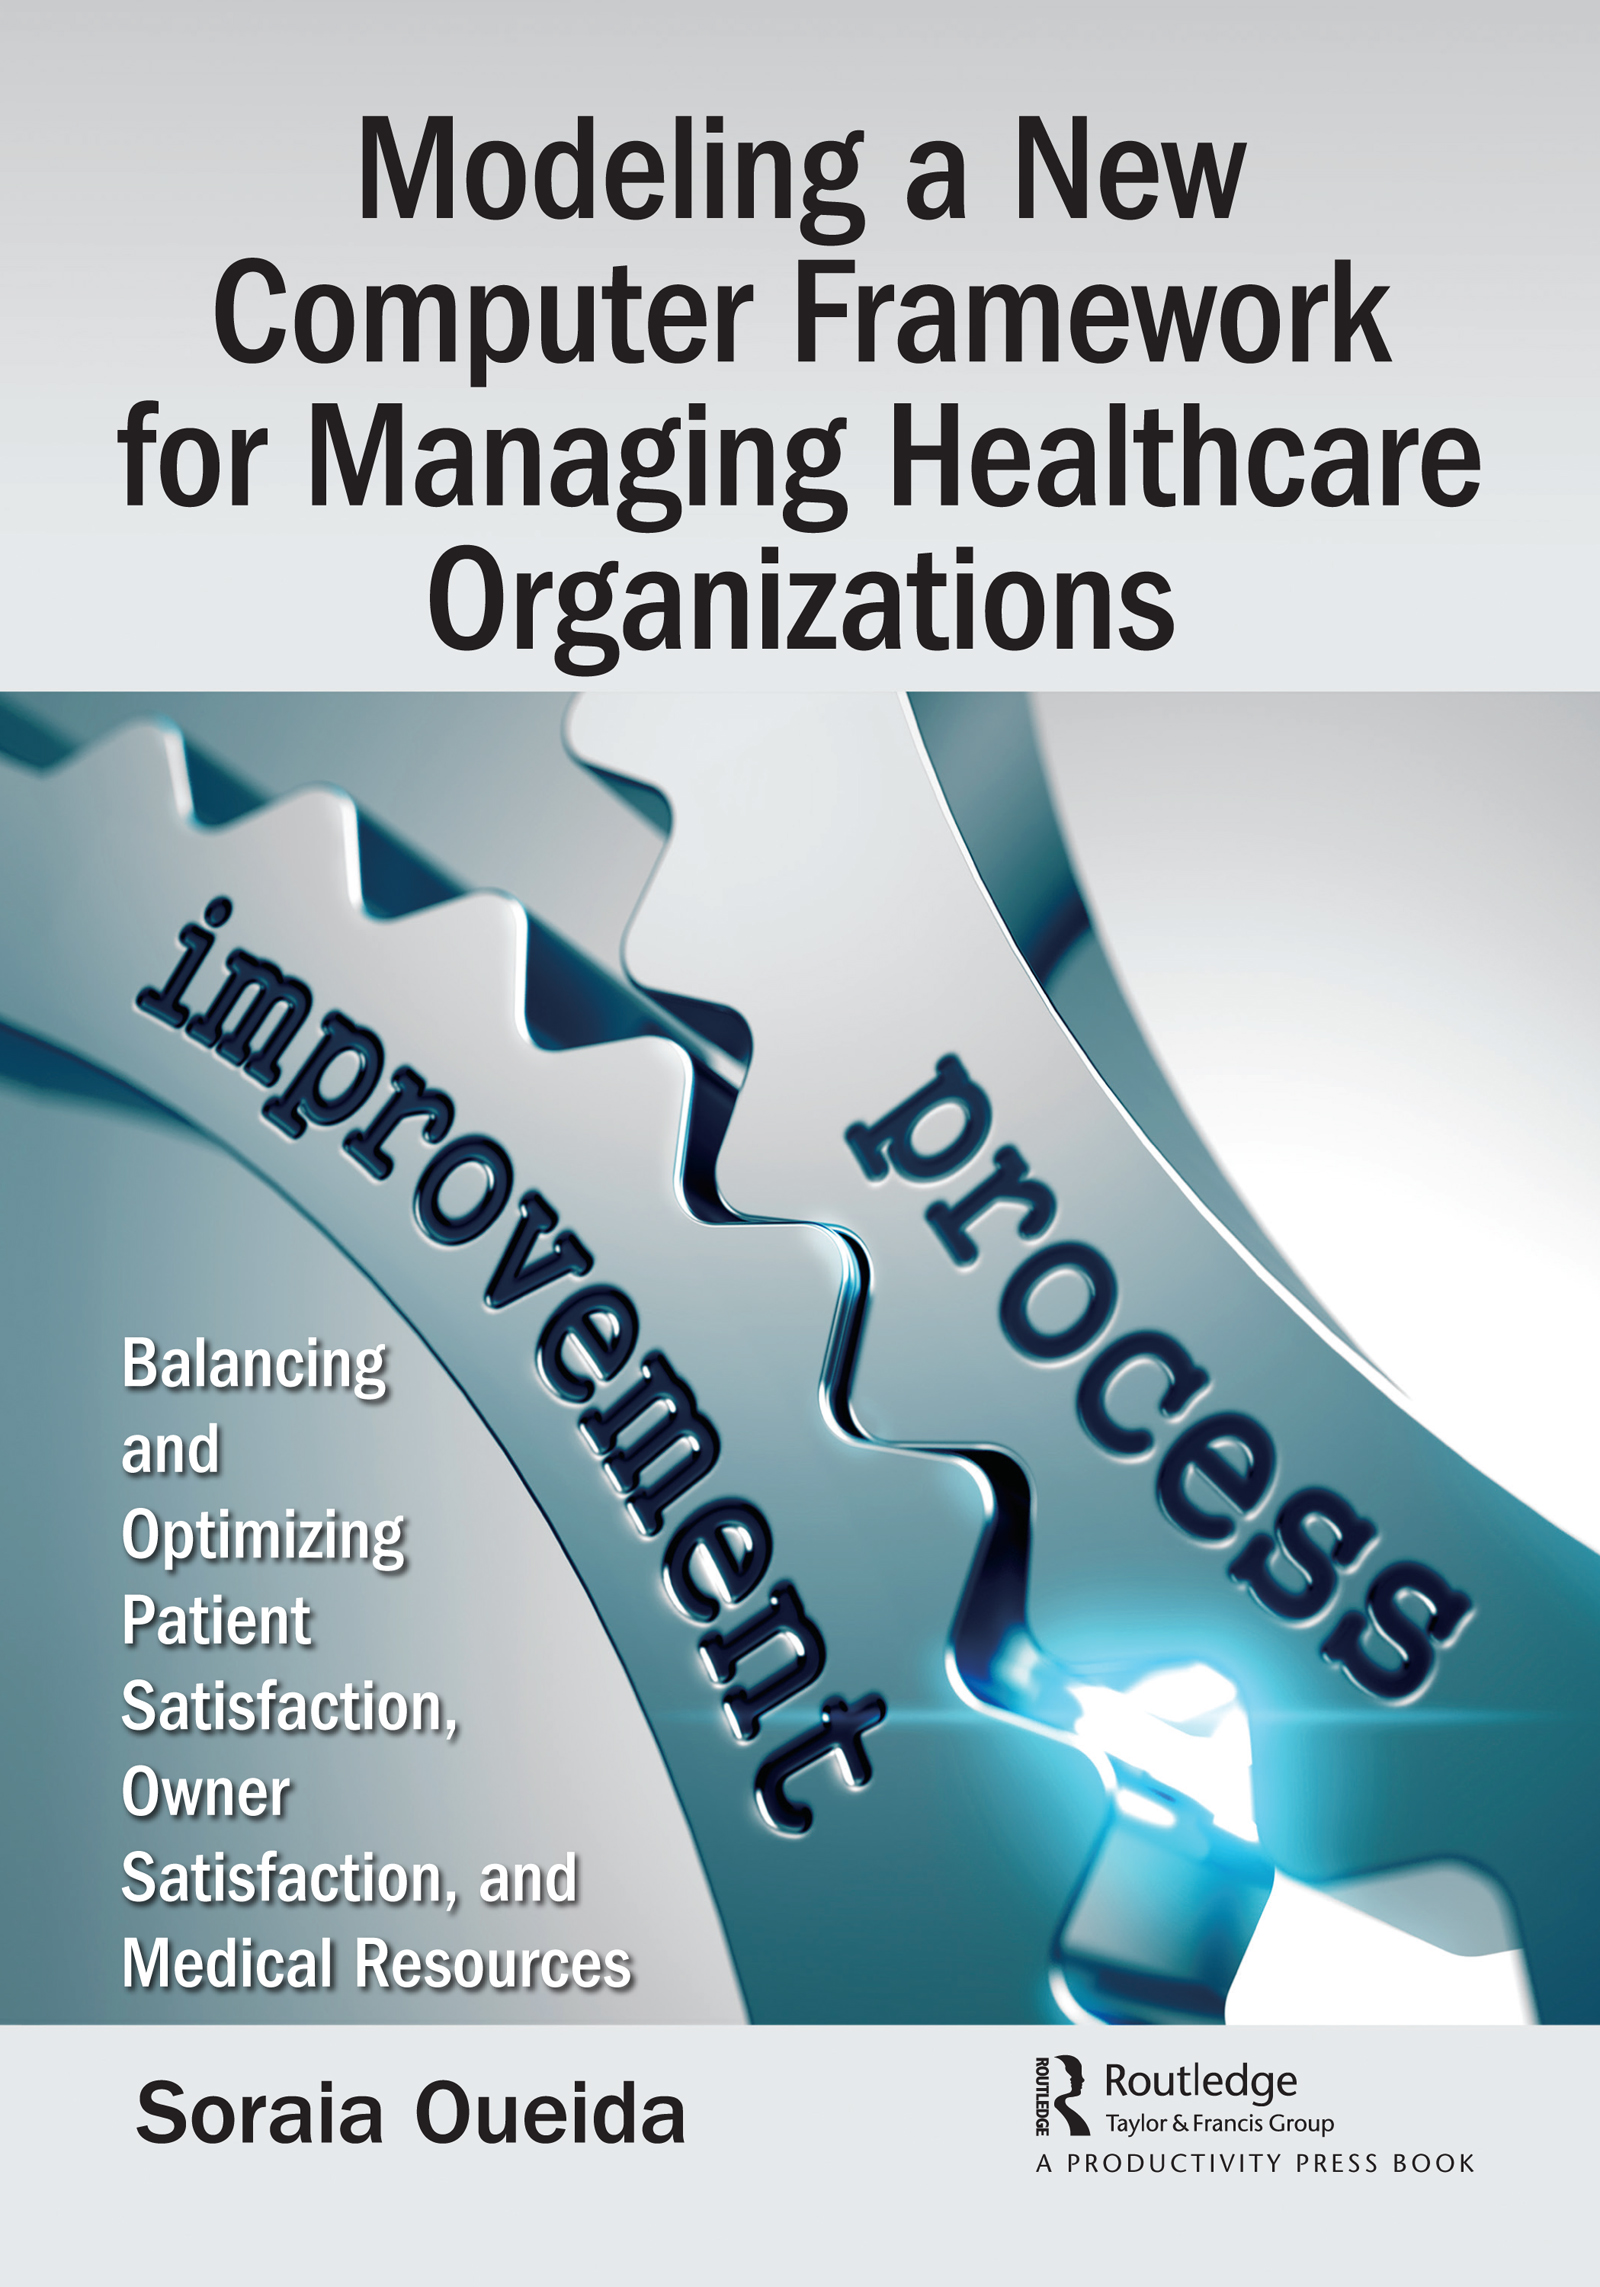 Modeling a New Computer Framework for Managing Healthcare Organizations